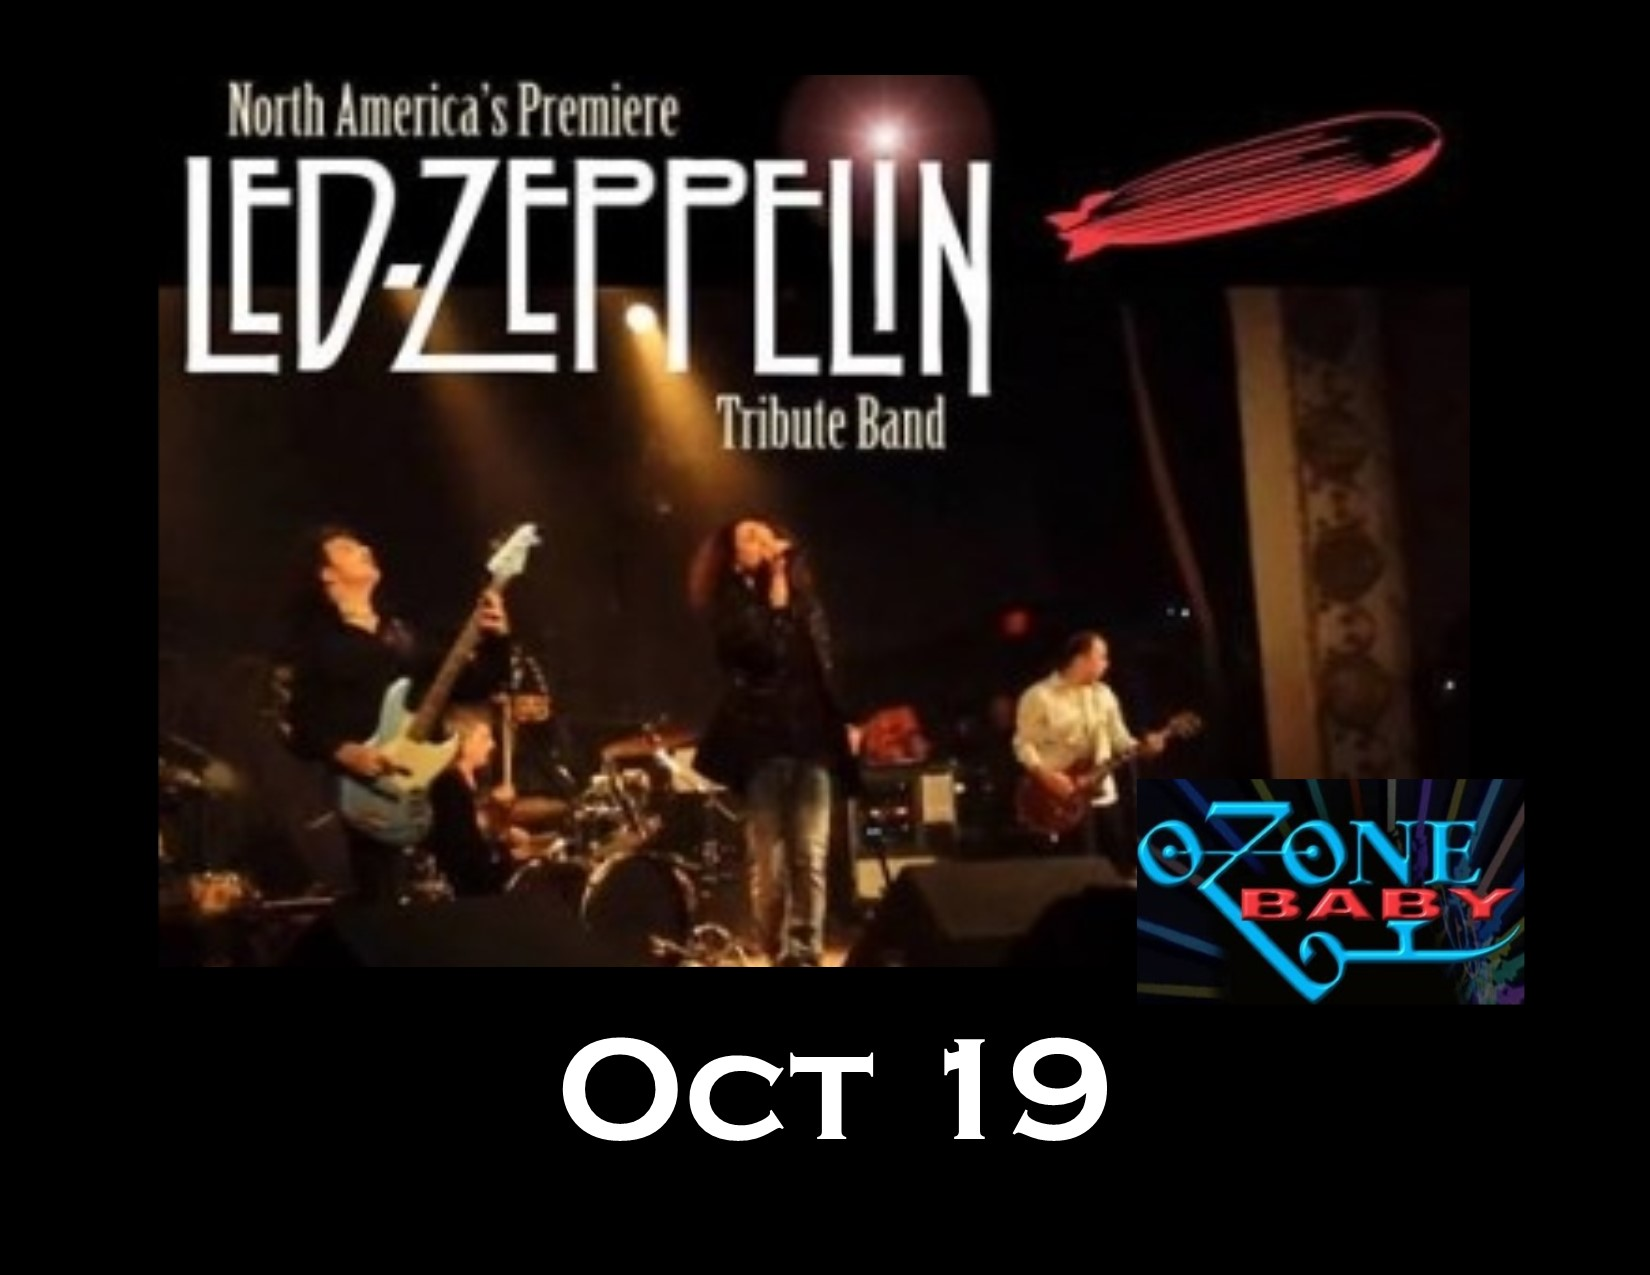 Ozone Baby - Honouring The Music Of Led Zeppelin